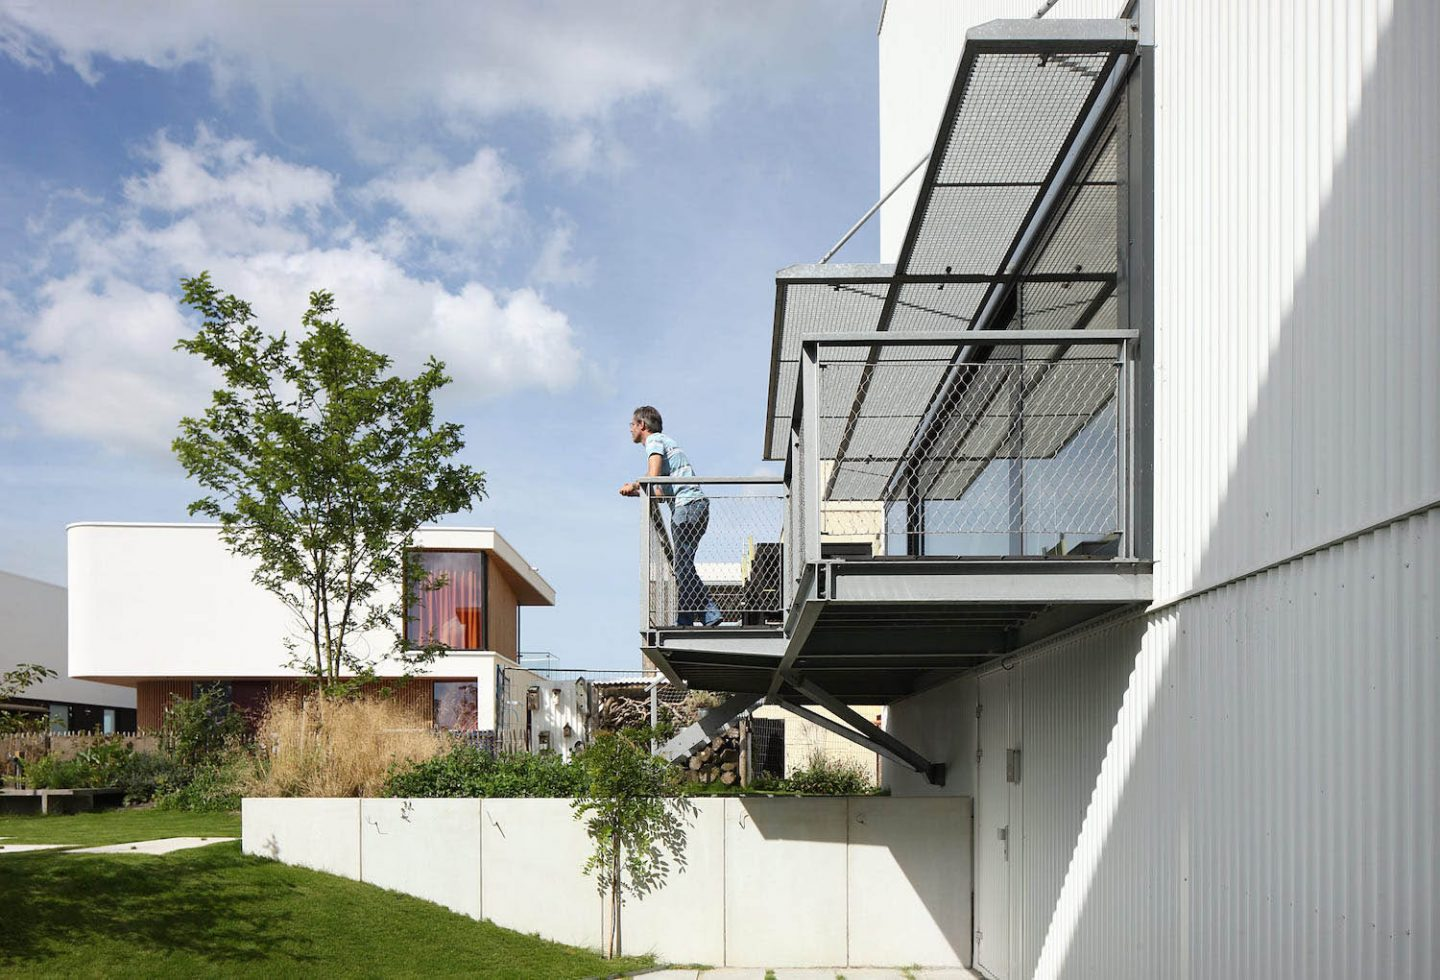 ignant_architecture_mka_woning_almere_small_05